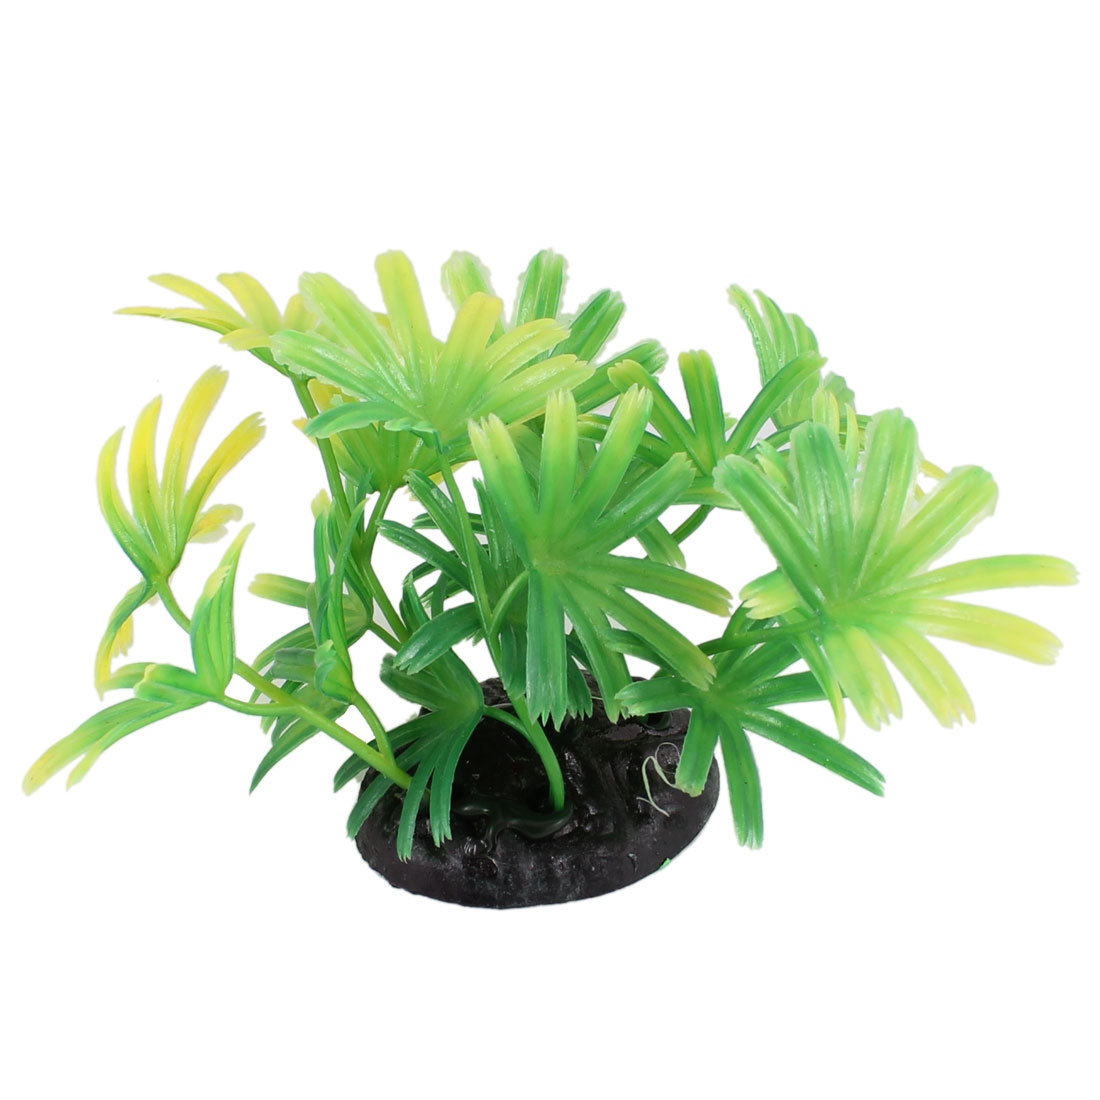 "2.4"" High Yellow Green Leaves Fish Tank Plastic Simulation Plant Decoration"